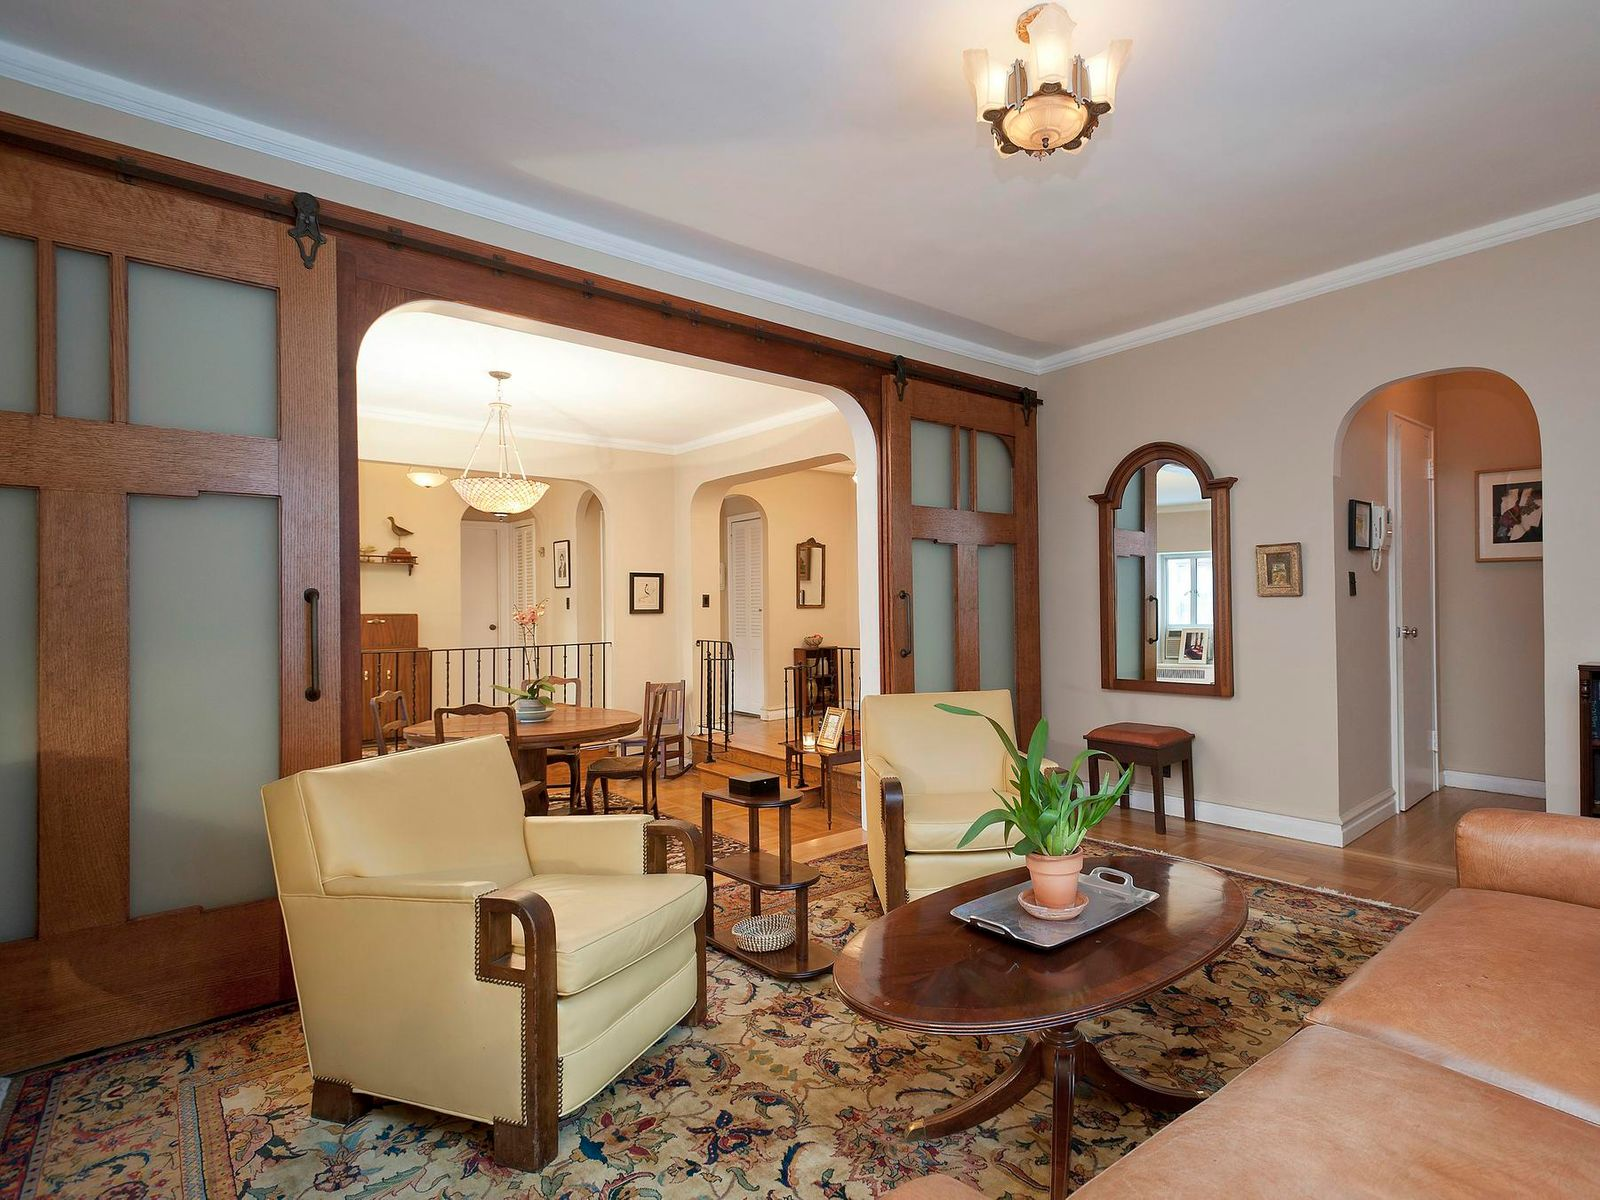 165 West 20th Street Unit 6AB